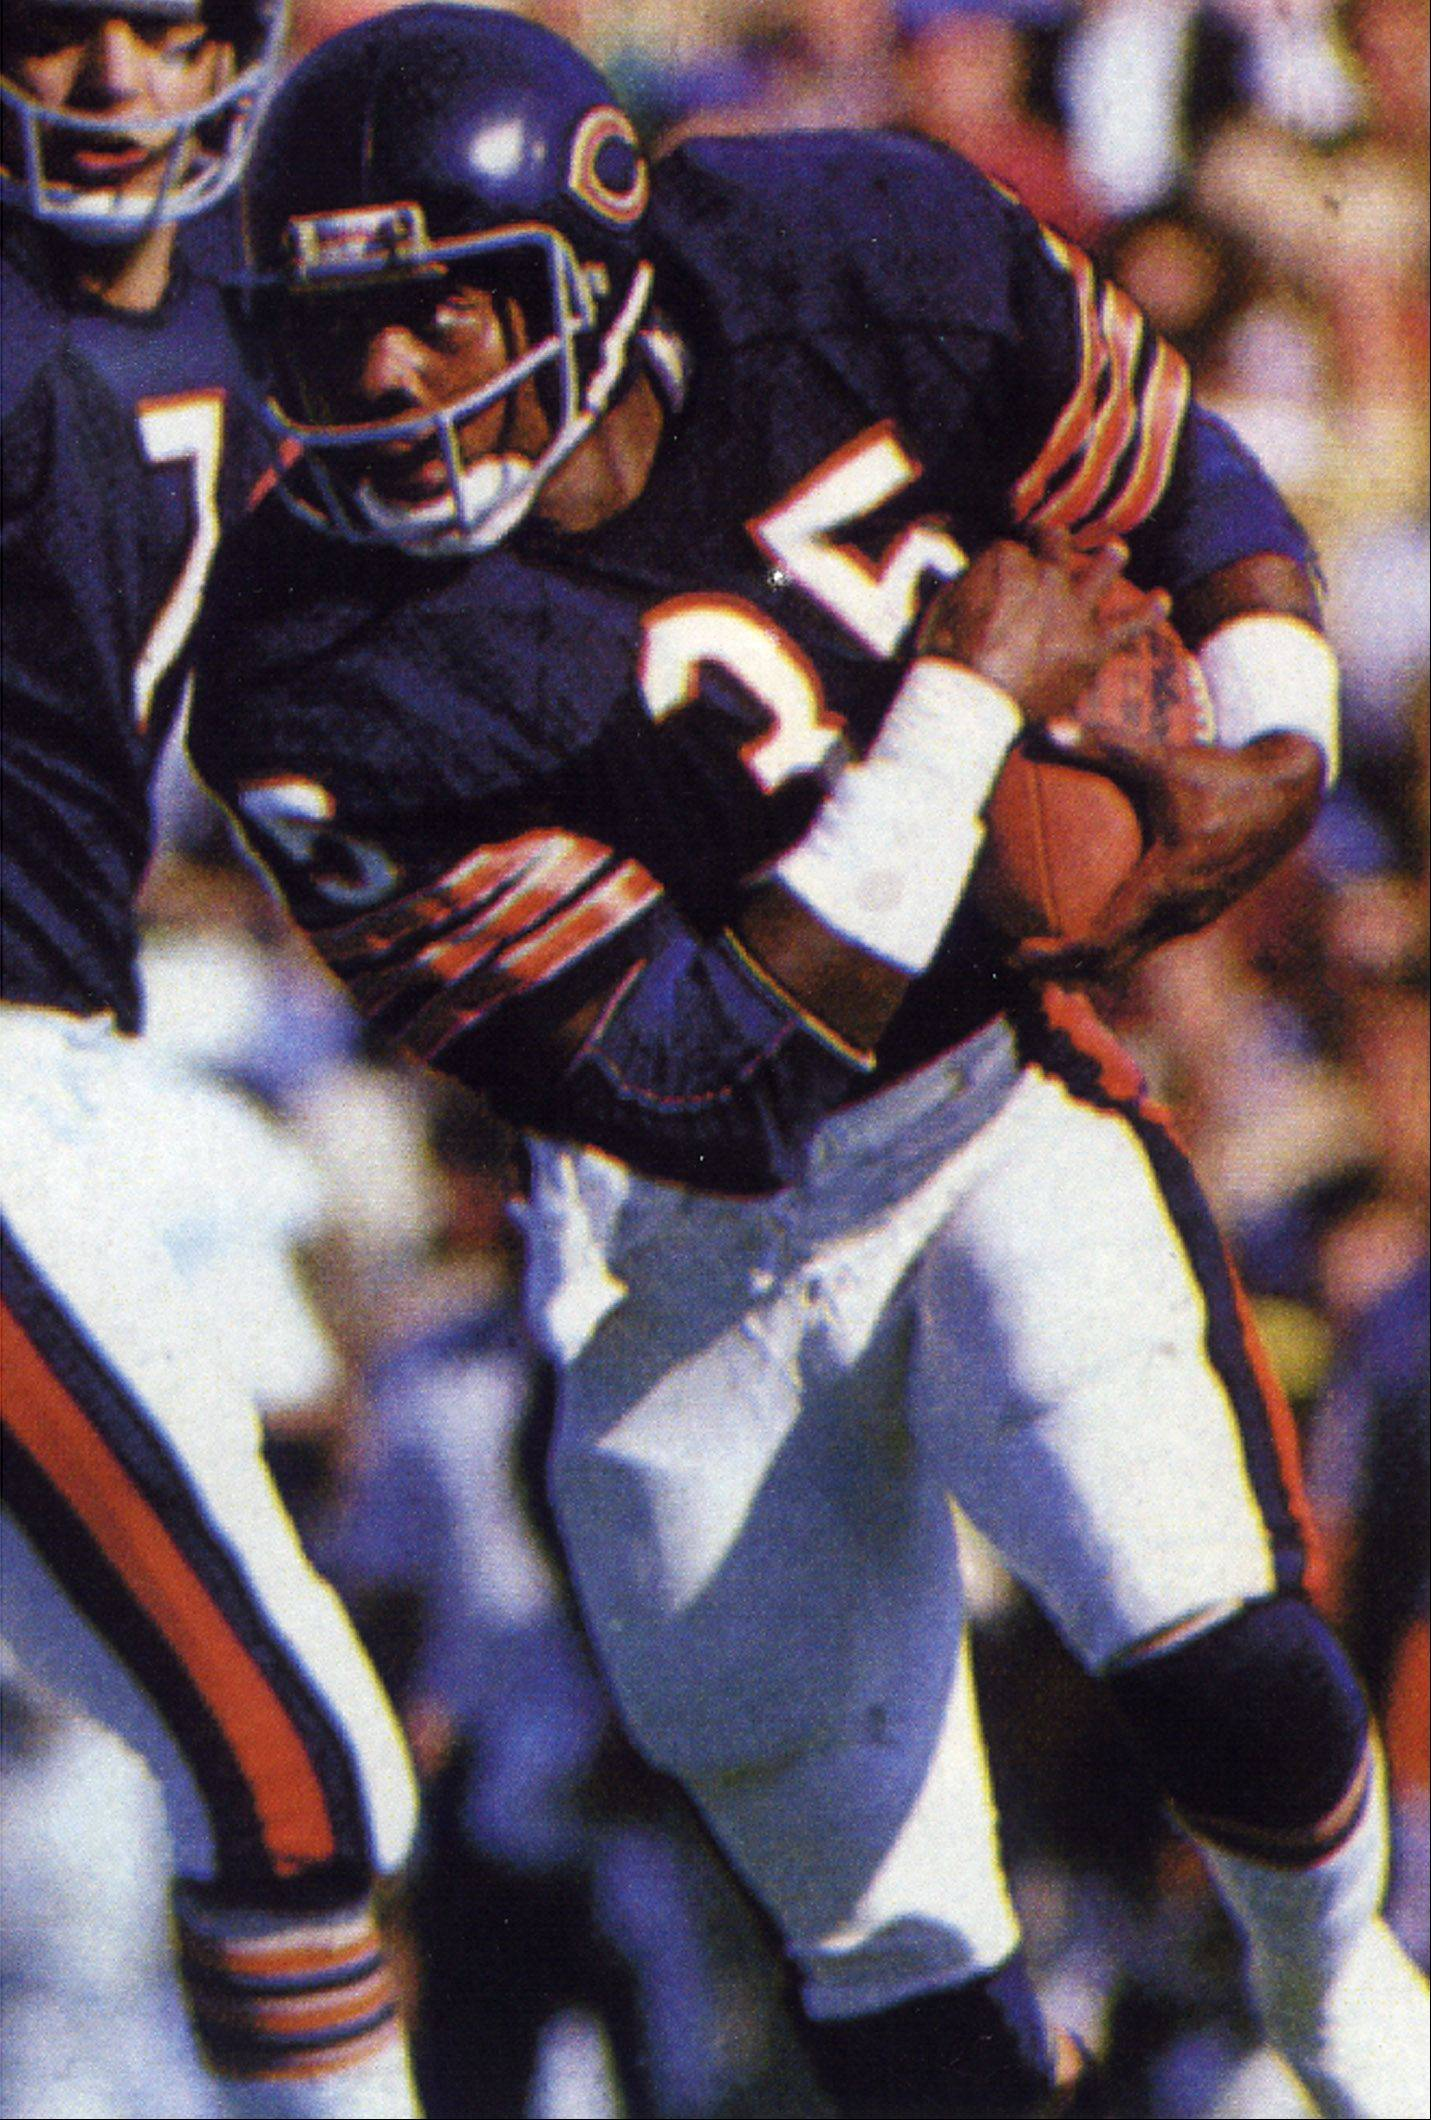 Known mostly as the lead blocker for Hall-of-Fame running back Walter Payton, Chicago Bear Roland Harper averaged 4 yards per carry for his career and scored 18 touchdowns.